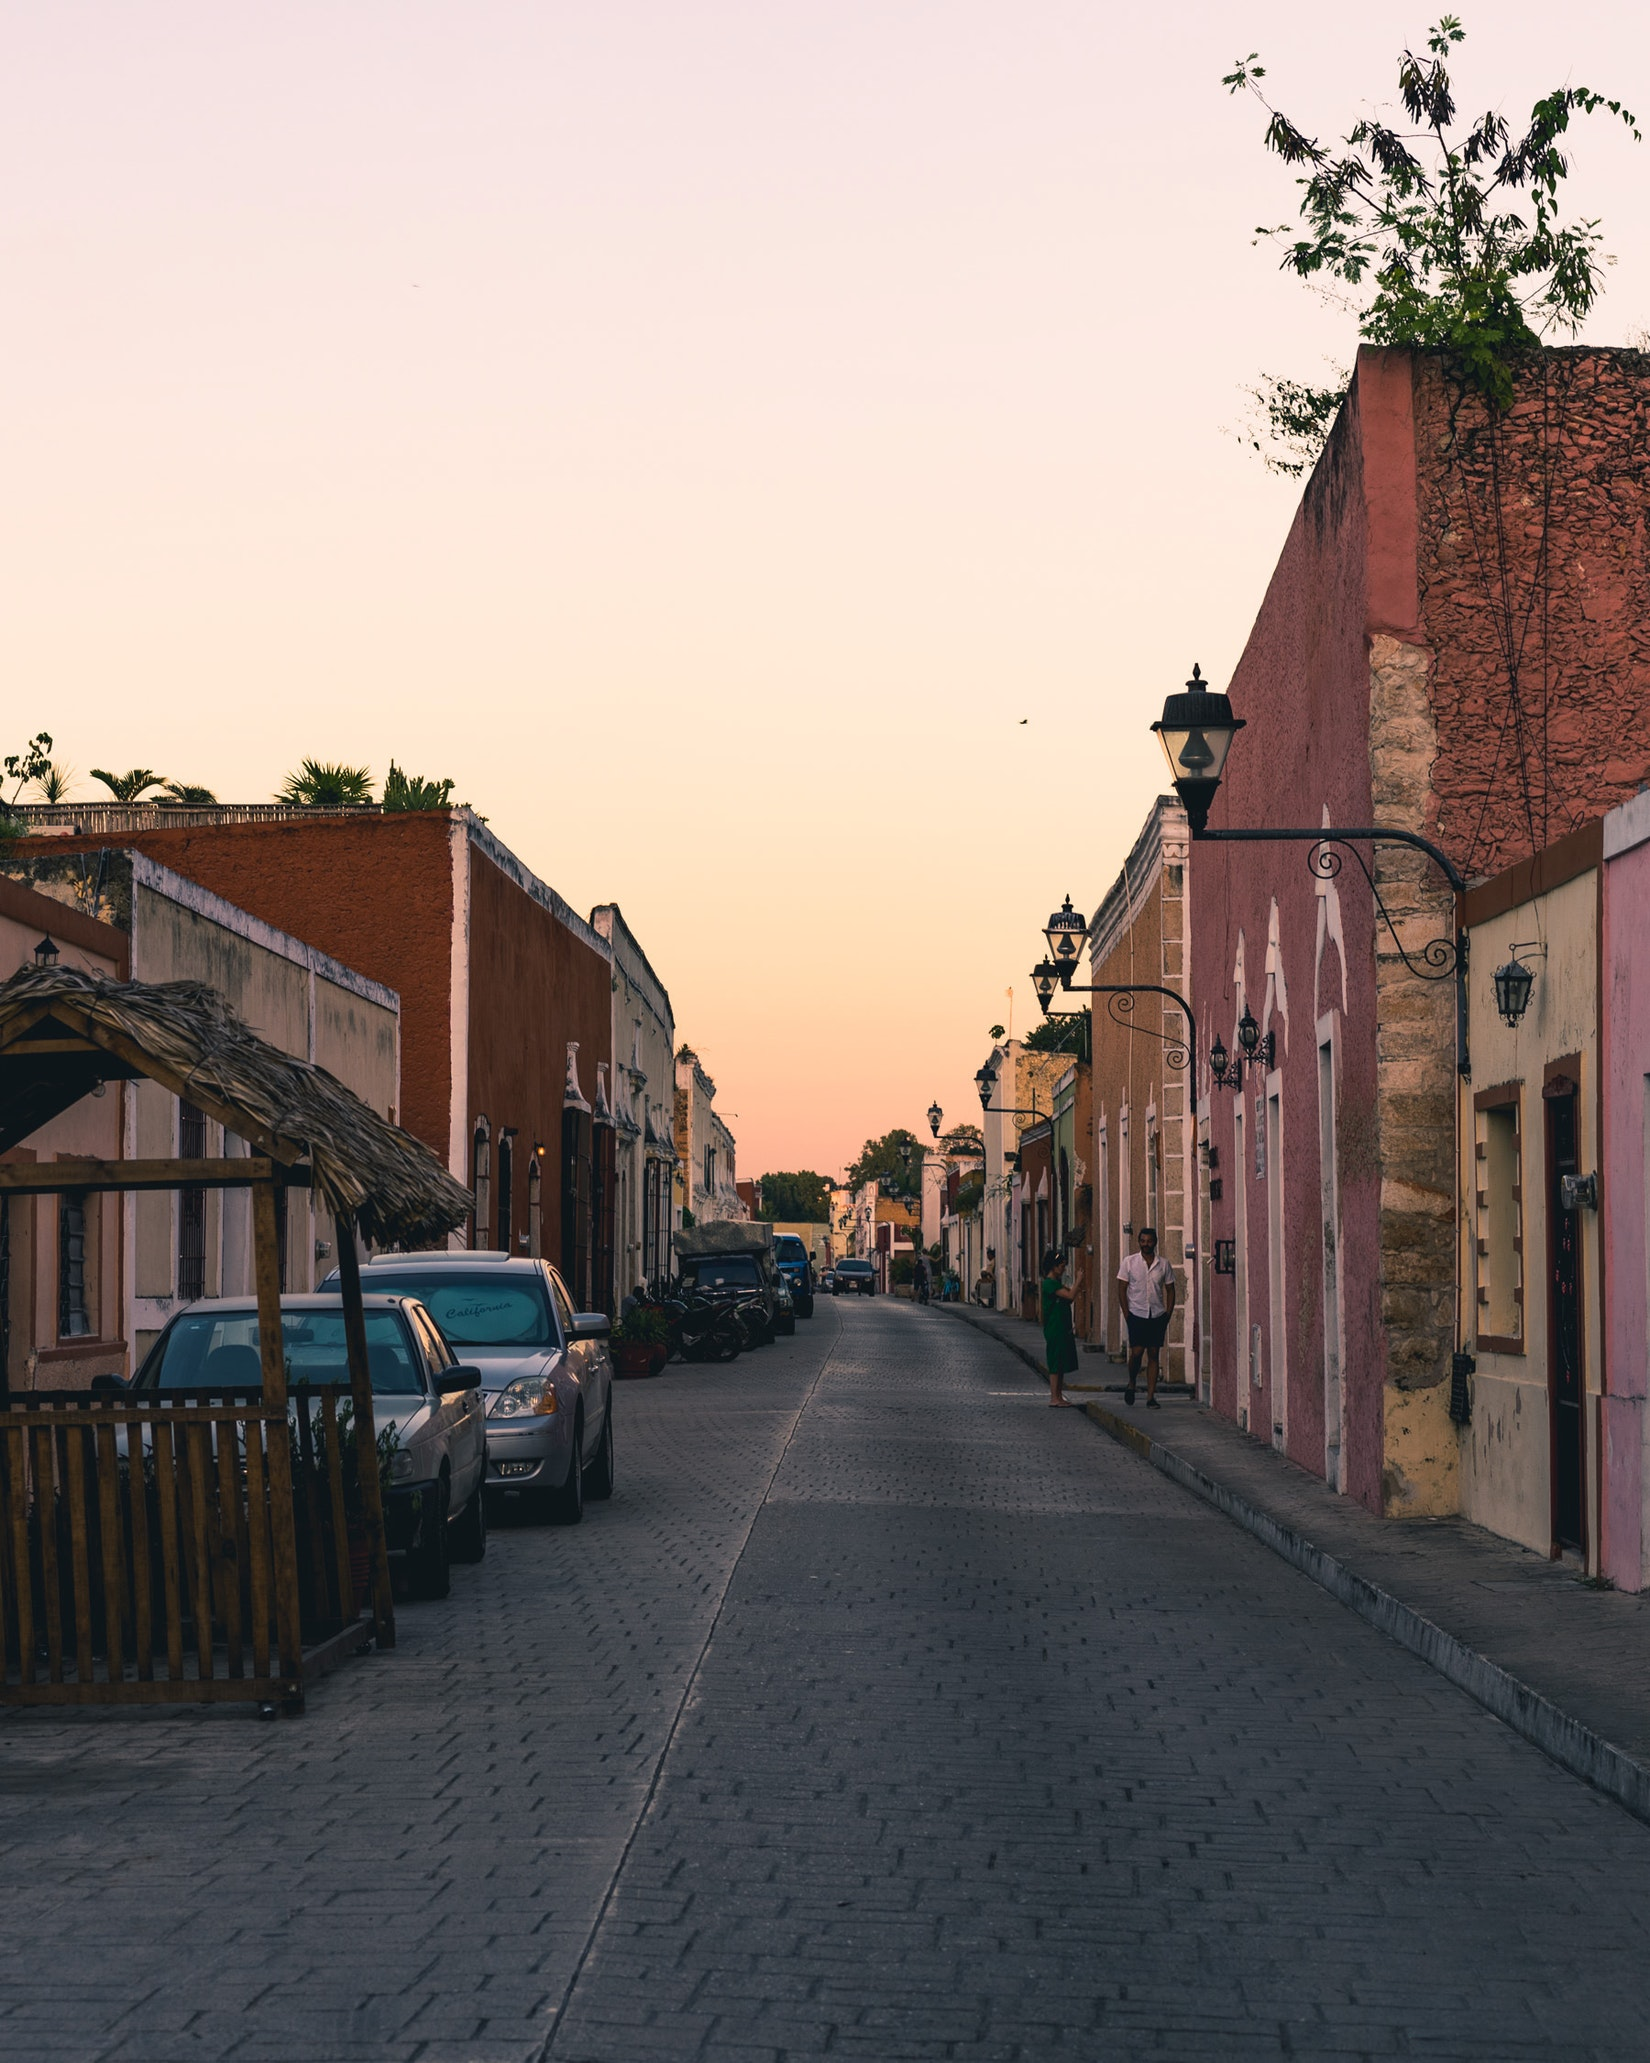 Calzada de los Frailes (famous diagonal street) at sunset in Valladolid